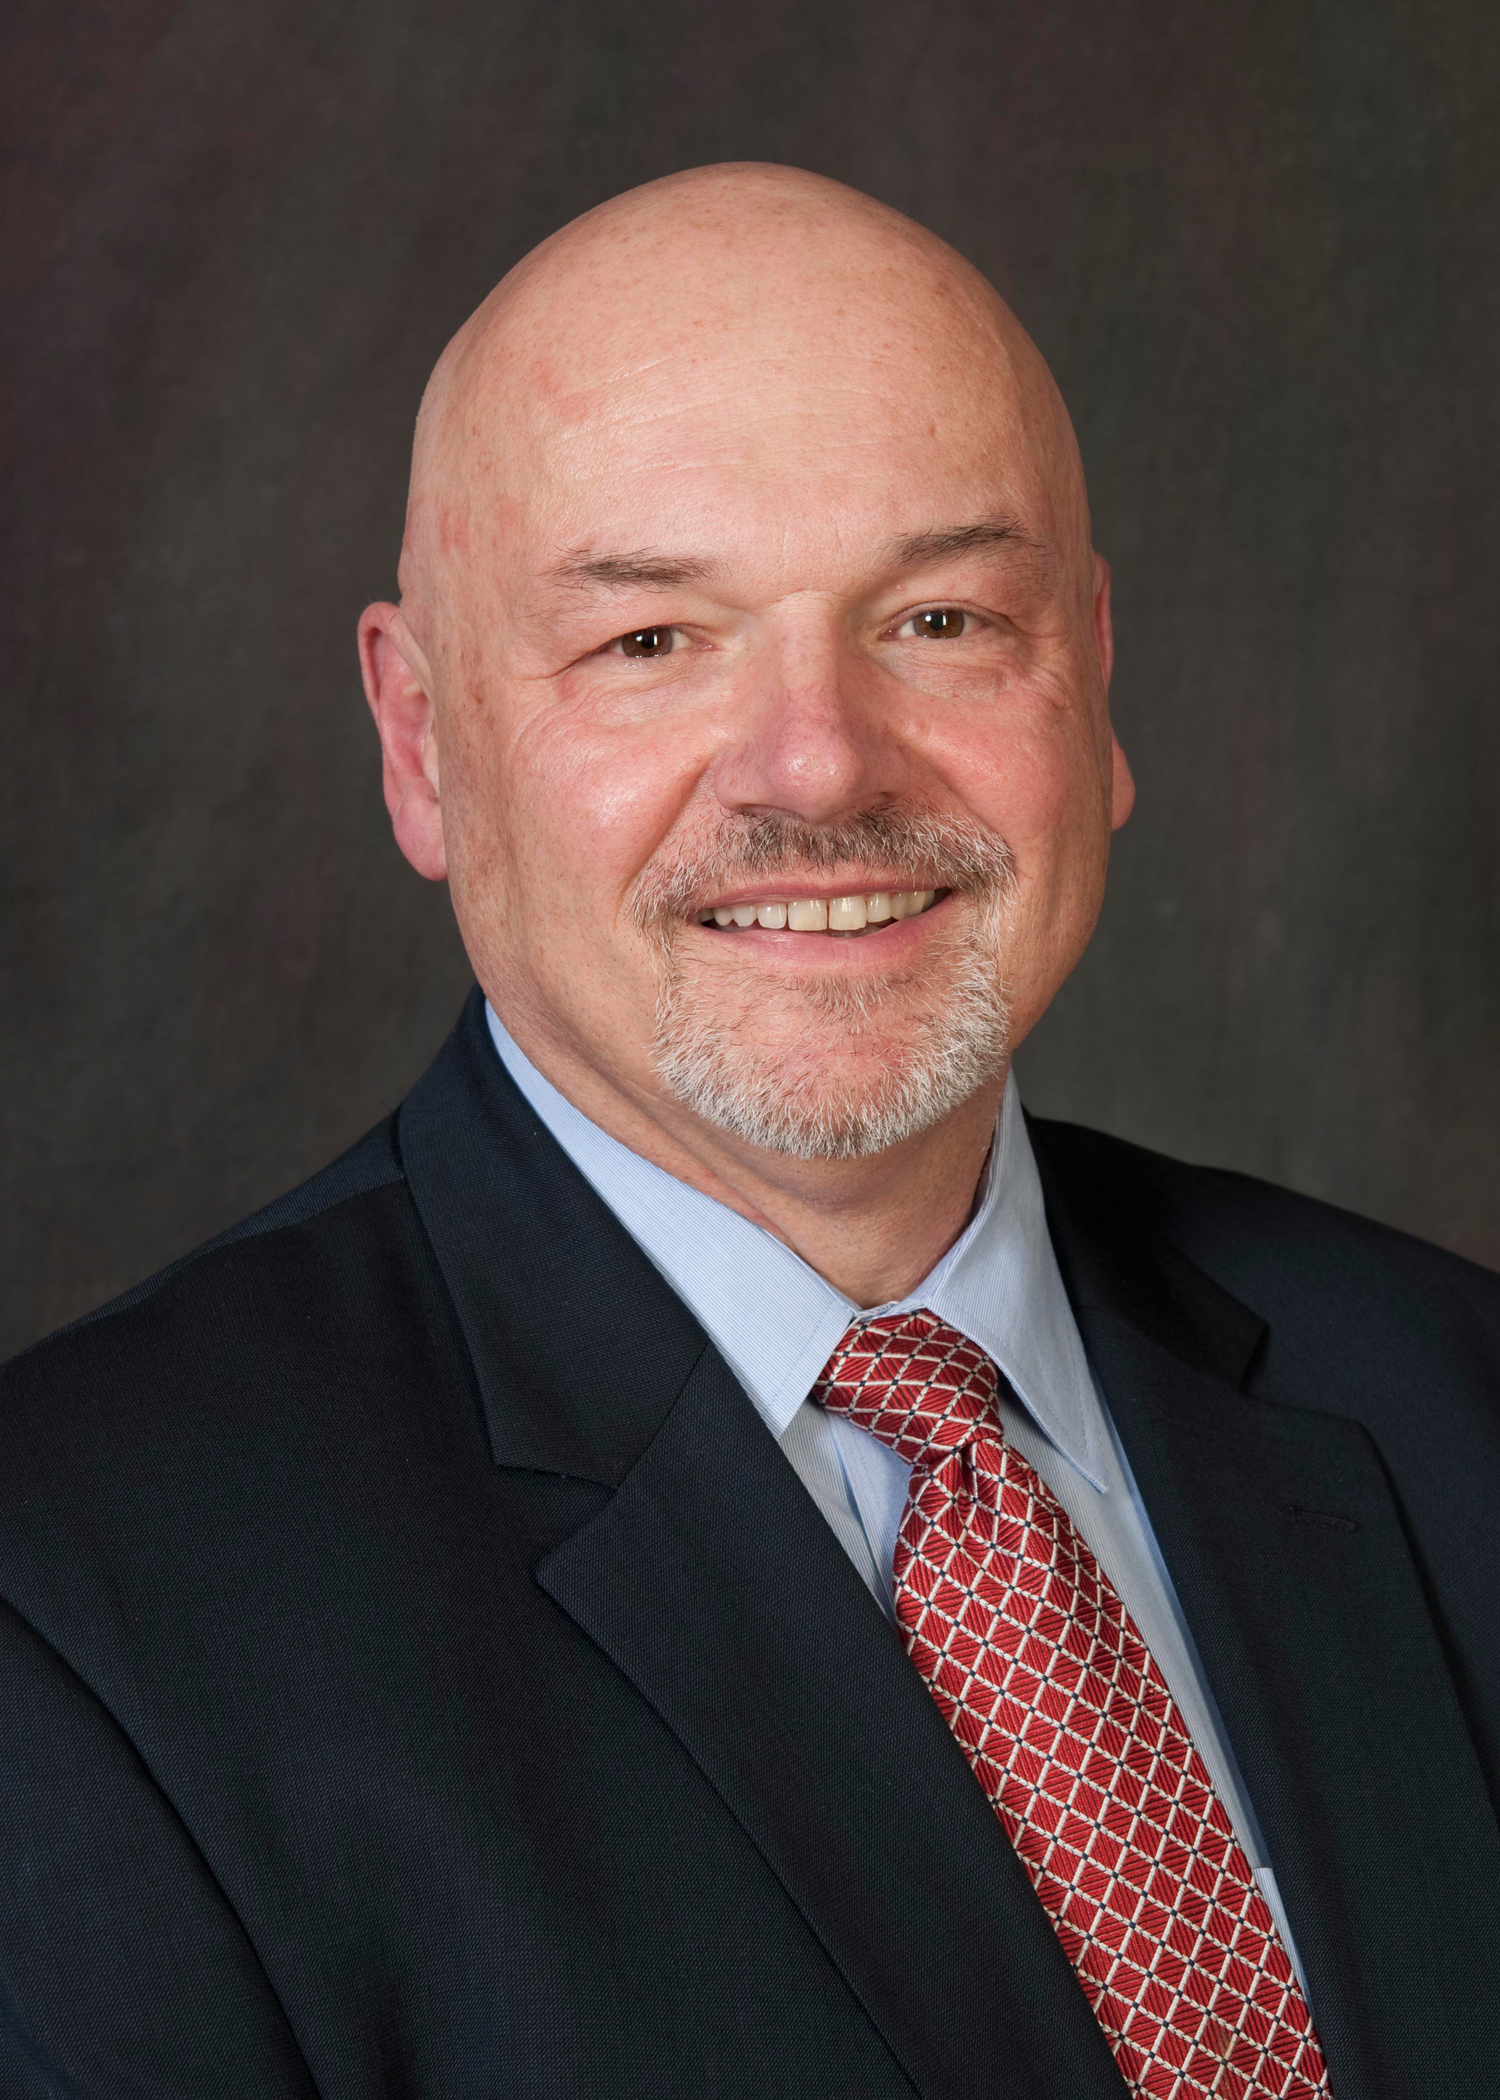 Jay R. Zdunek, DO, MBA